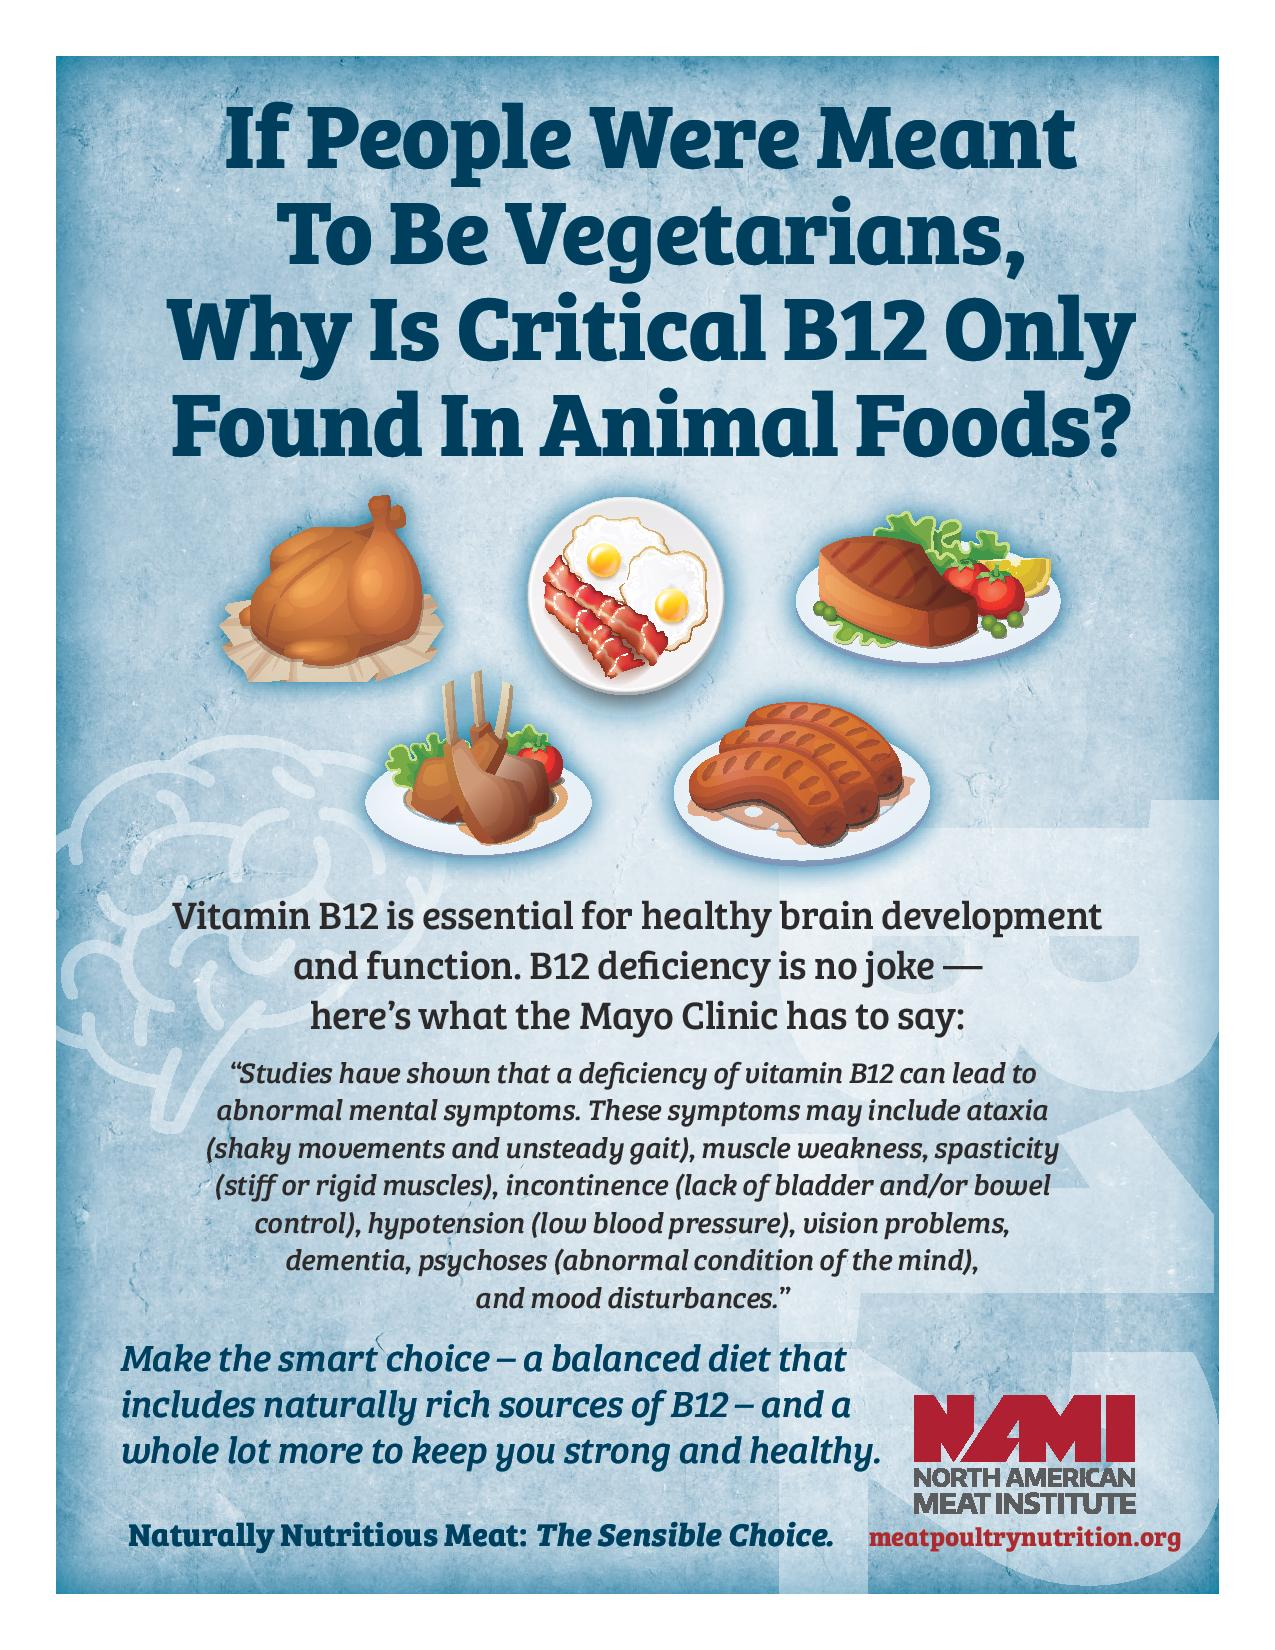 B12 Is Only Found Naturally In Animal Foods